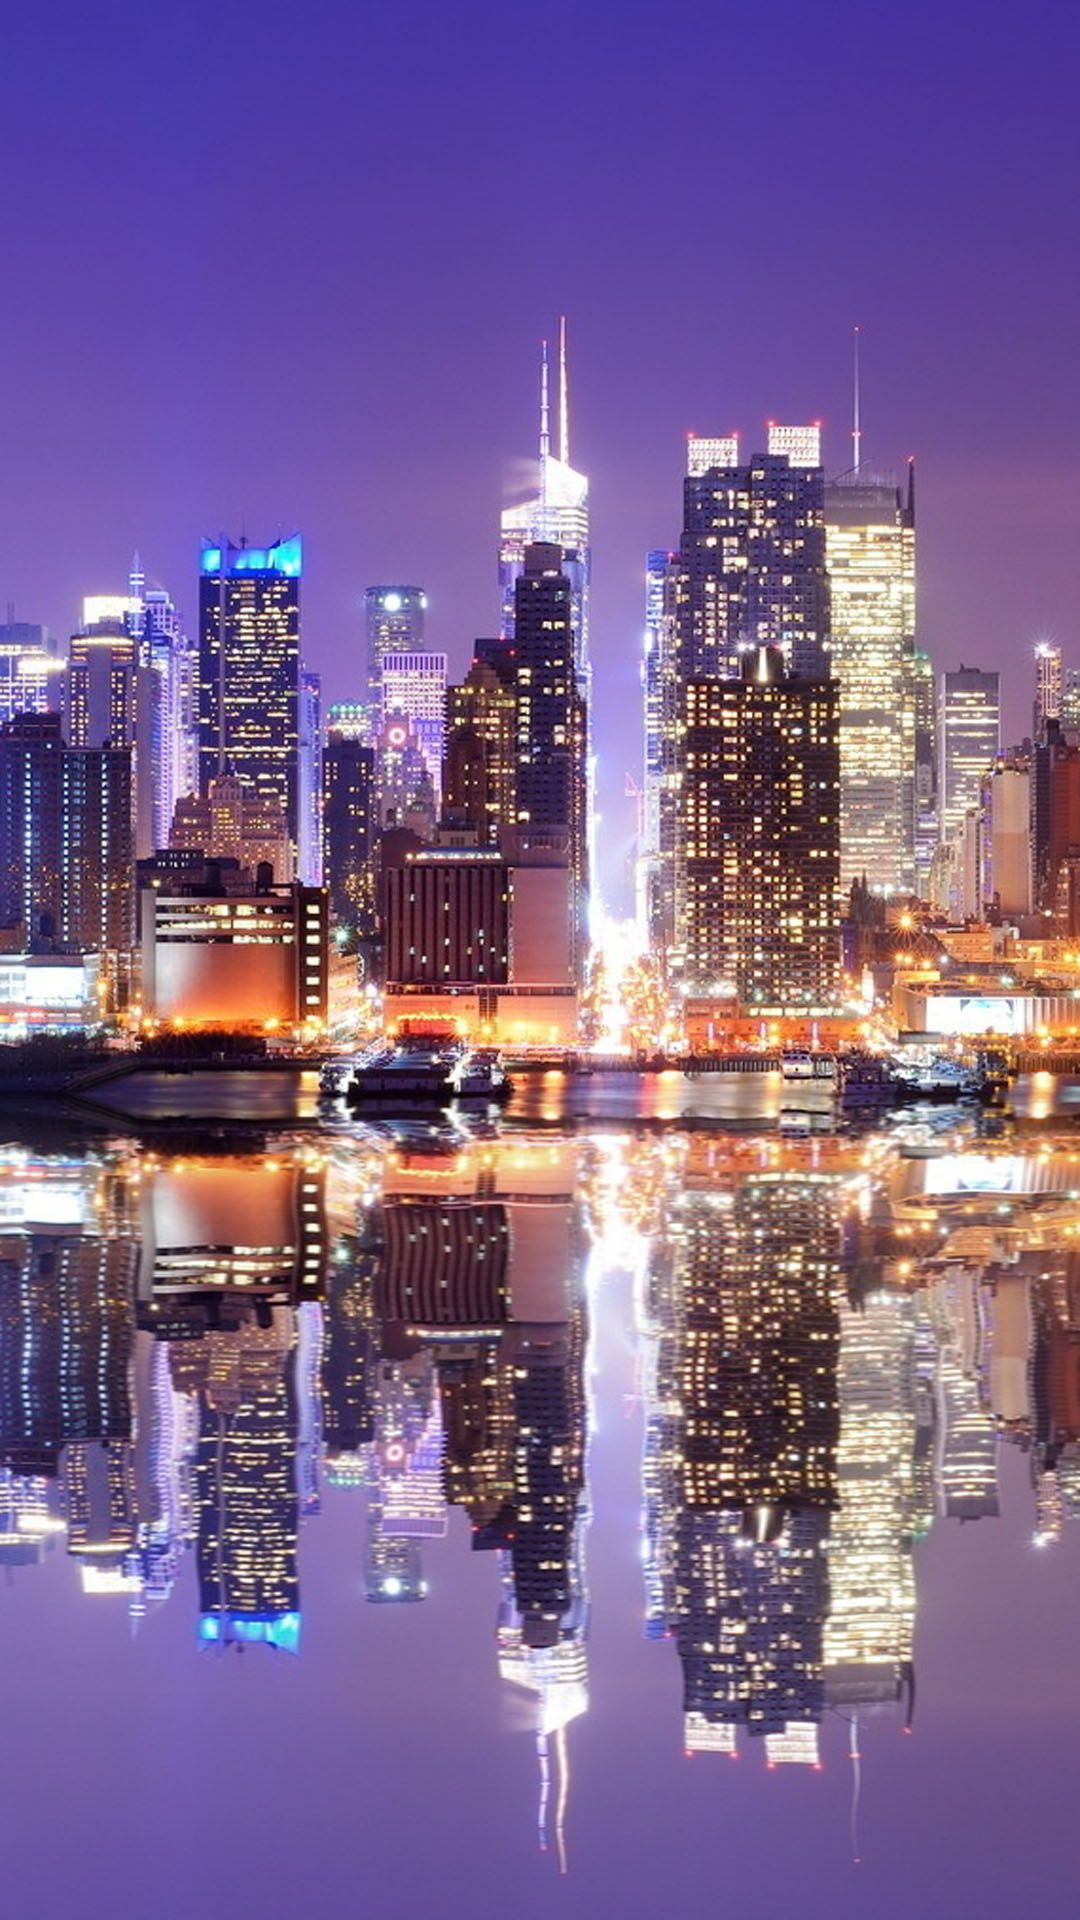 Hong Kong Reflection Wallpaper For Samsung Galaxy S5 Download City Lights Wallpaper City Wallpaper City Iphone Wallpaper